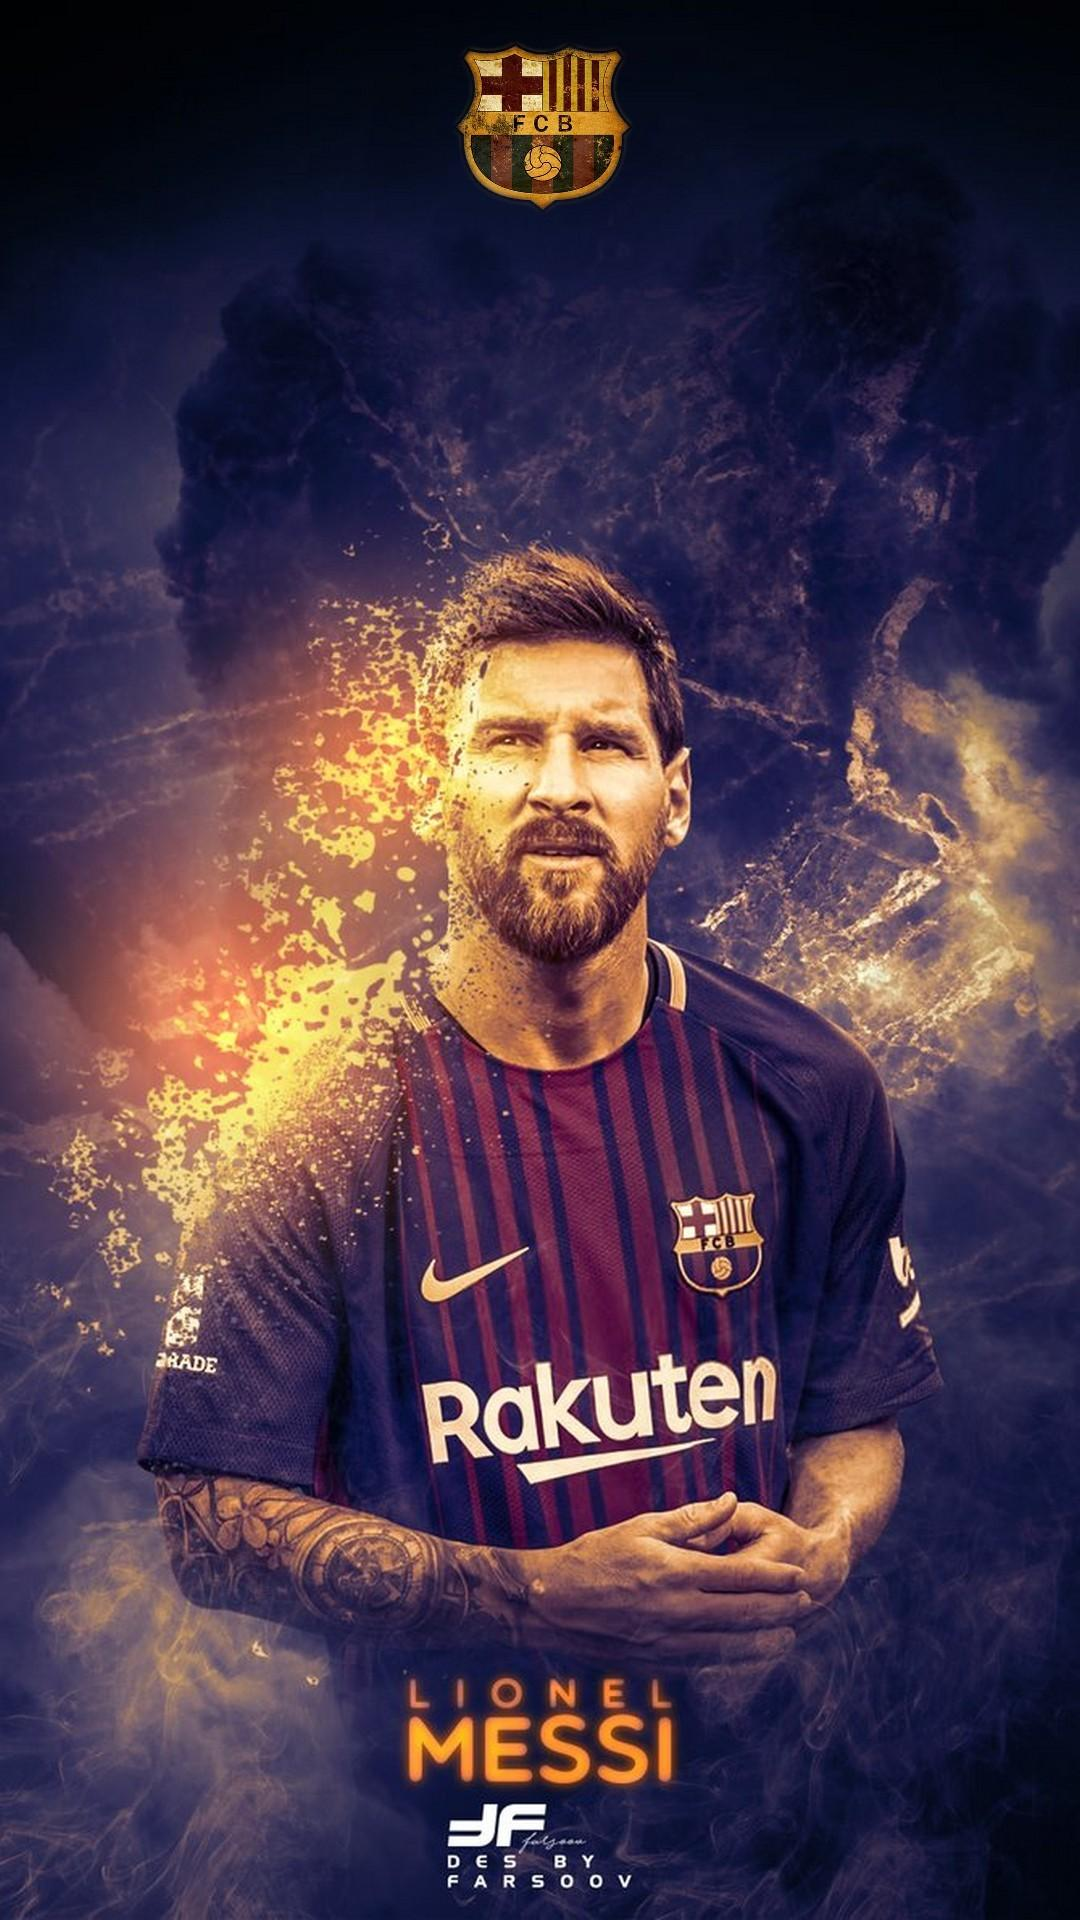 Leo Messi HD Wallpaper For iPhone | 2019 Football Wallpaper